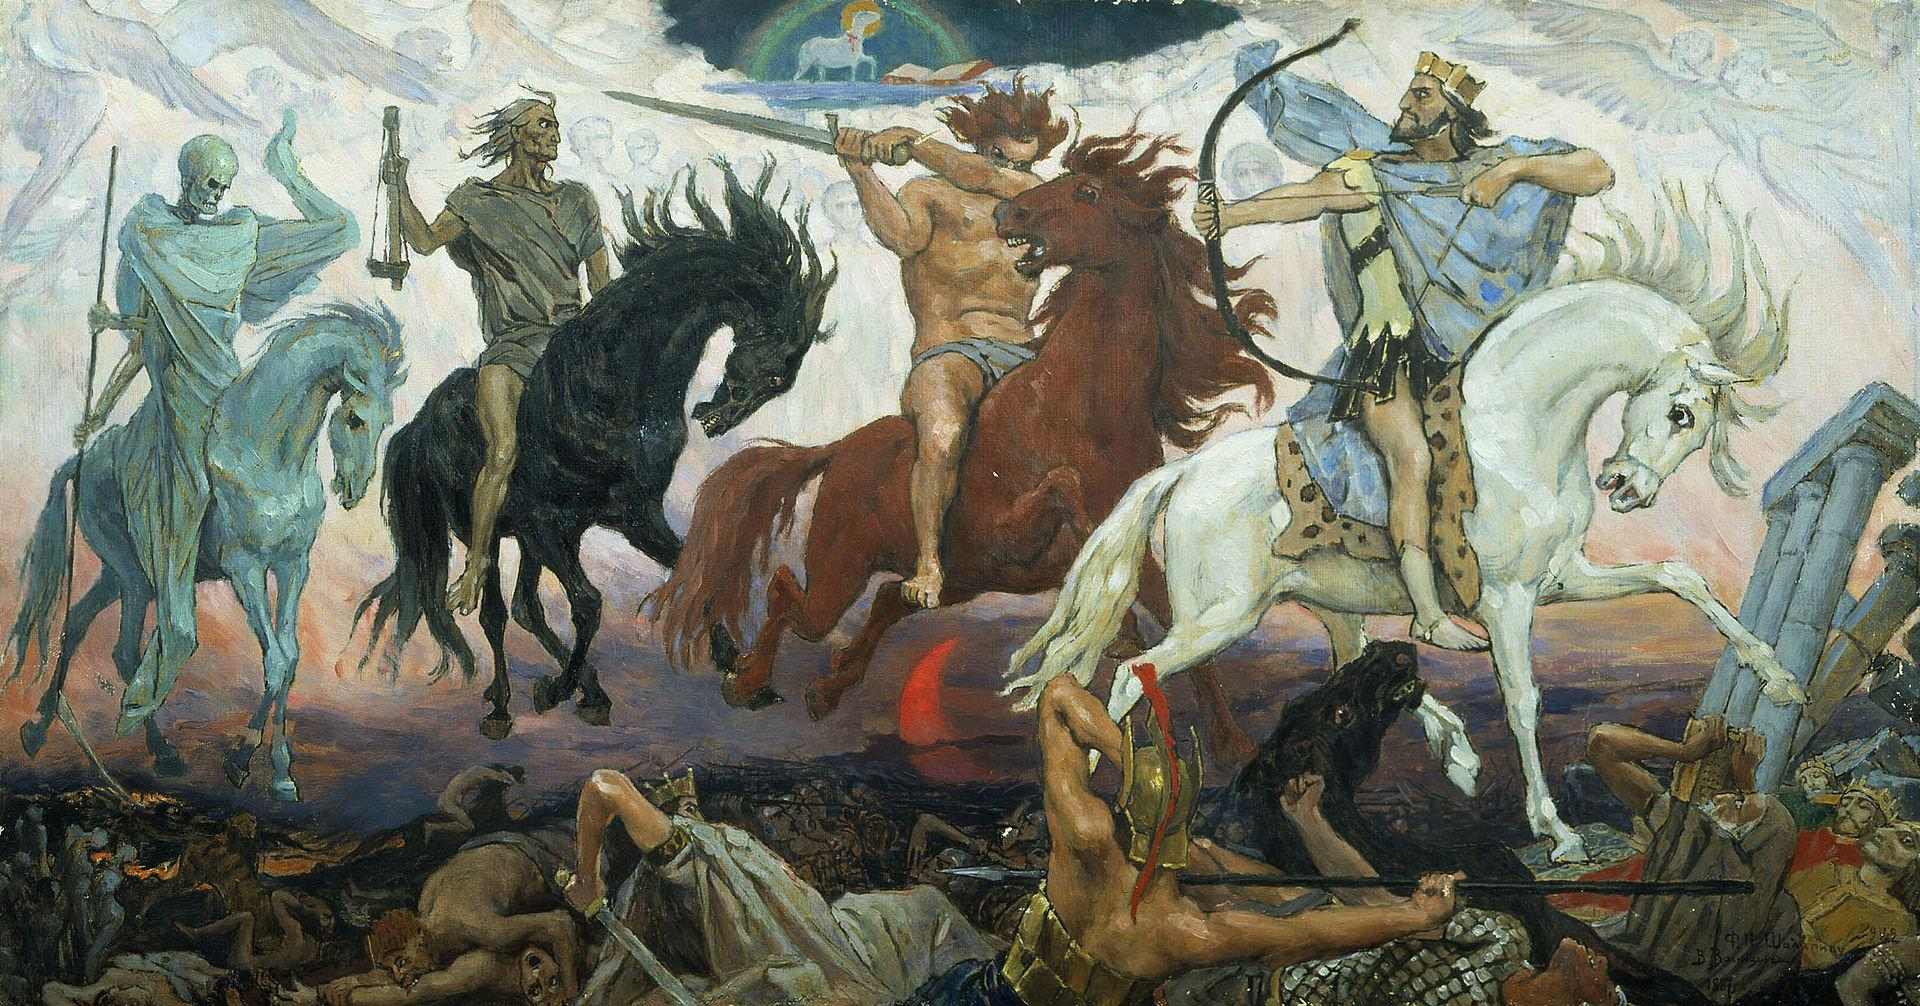 4 Horsemen Of The Recession And Stock Market Apocalypse